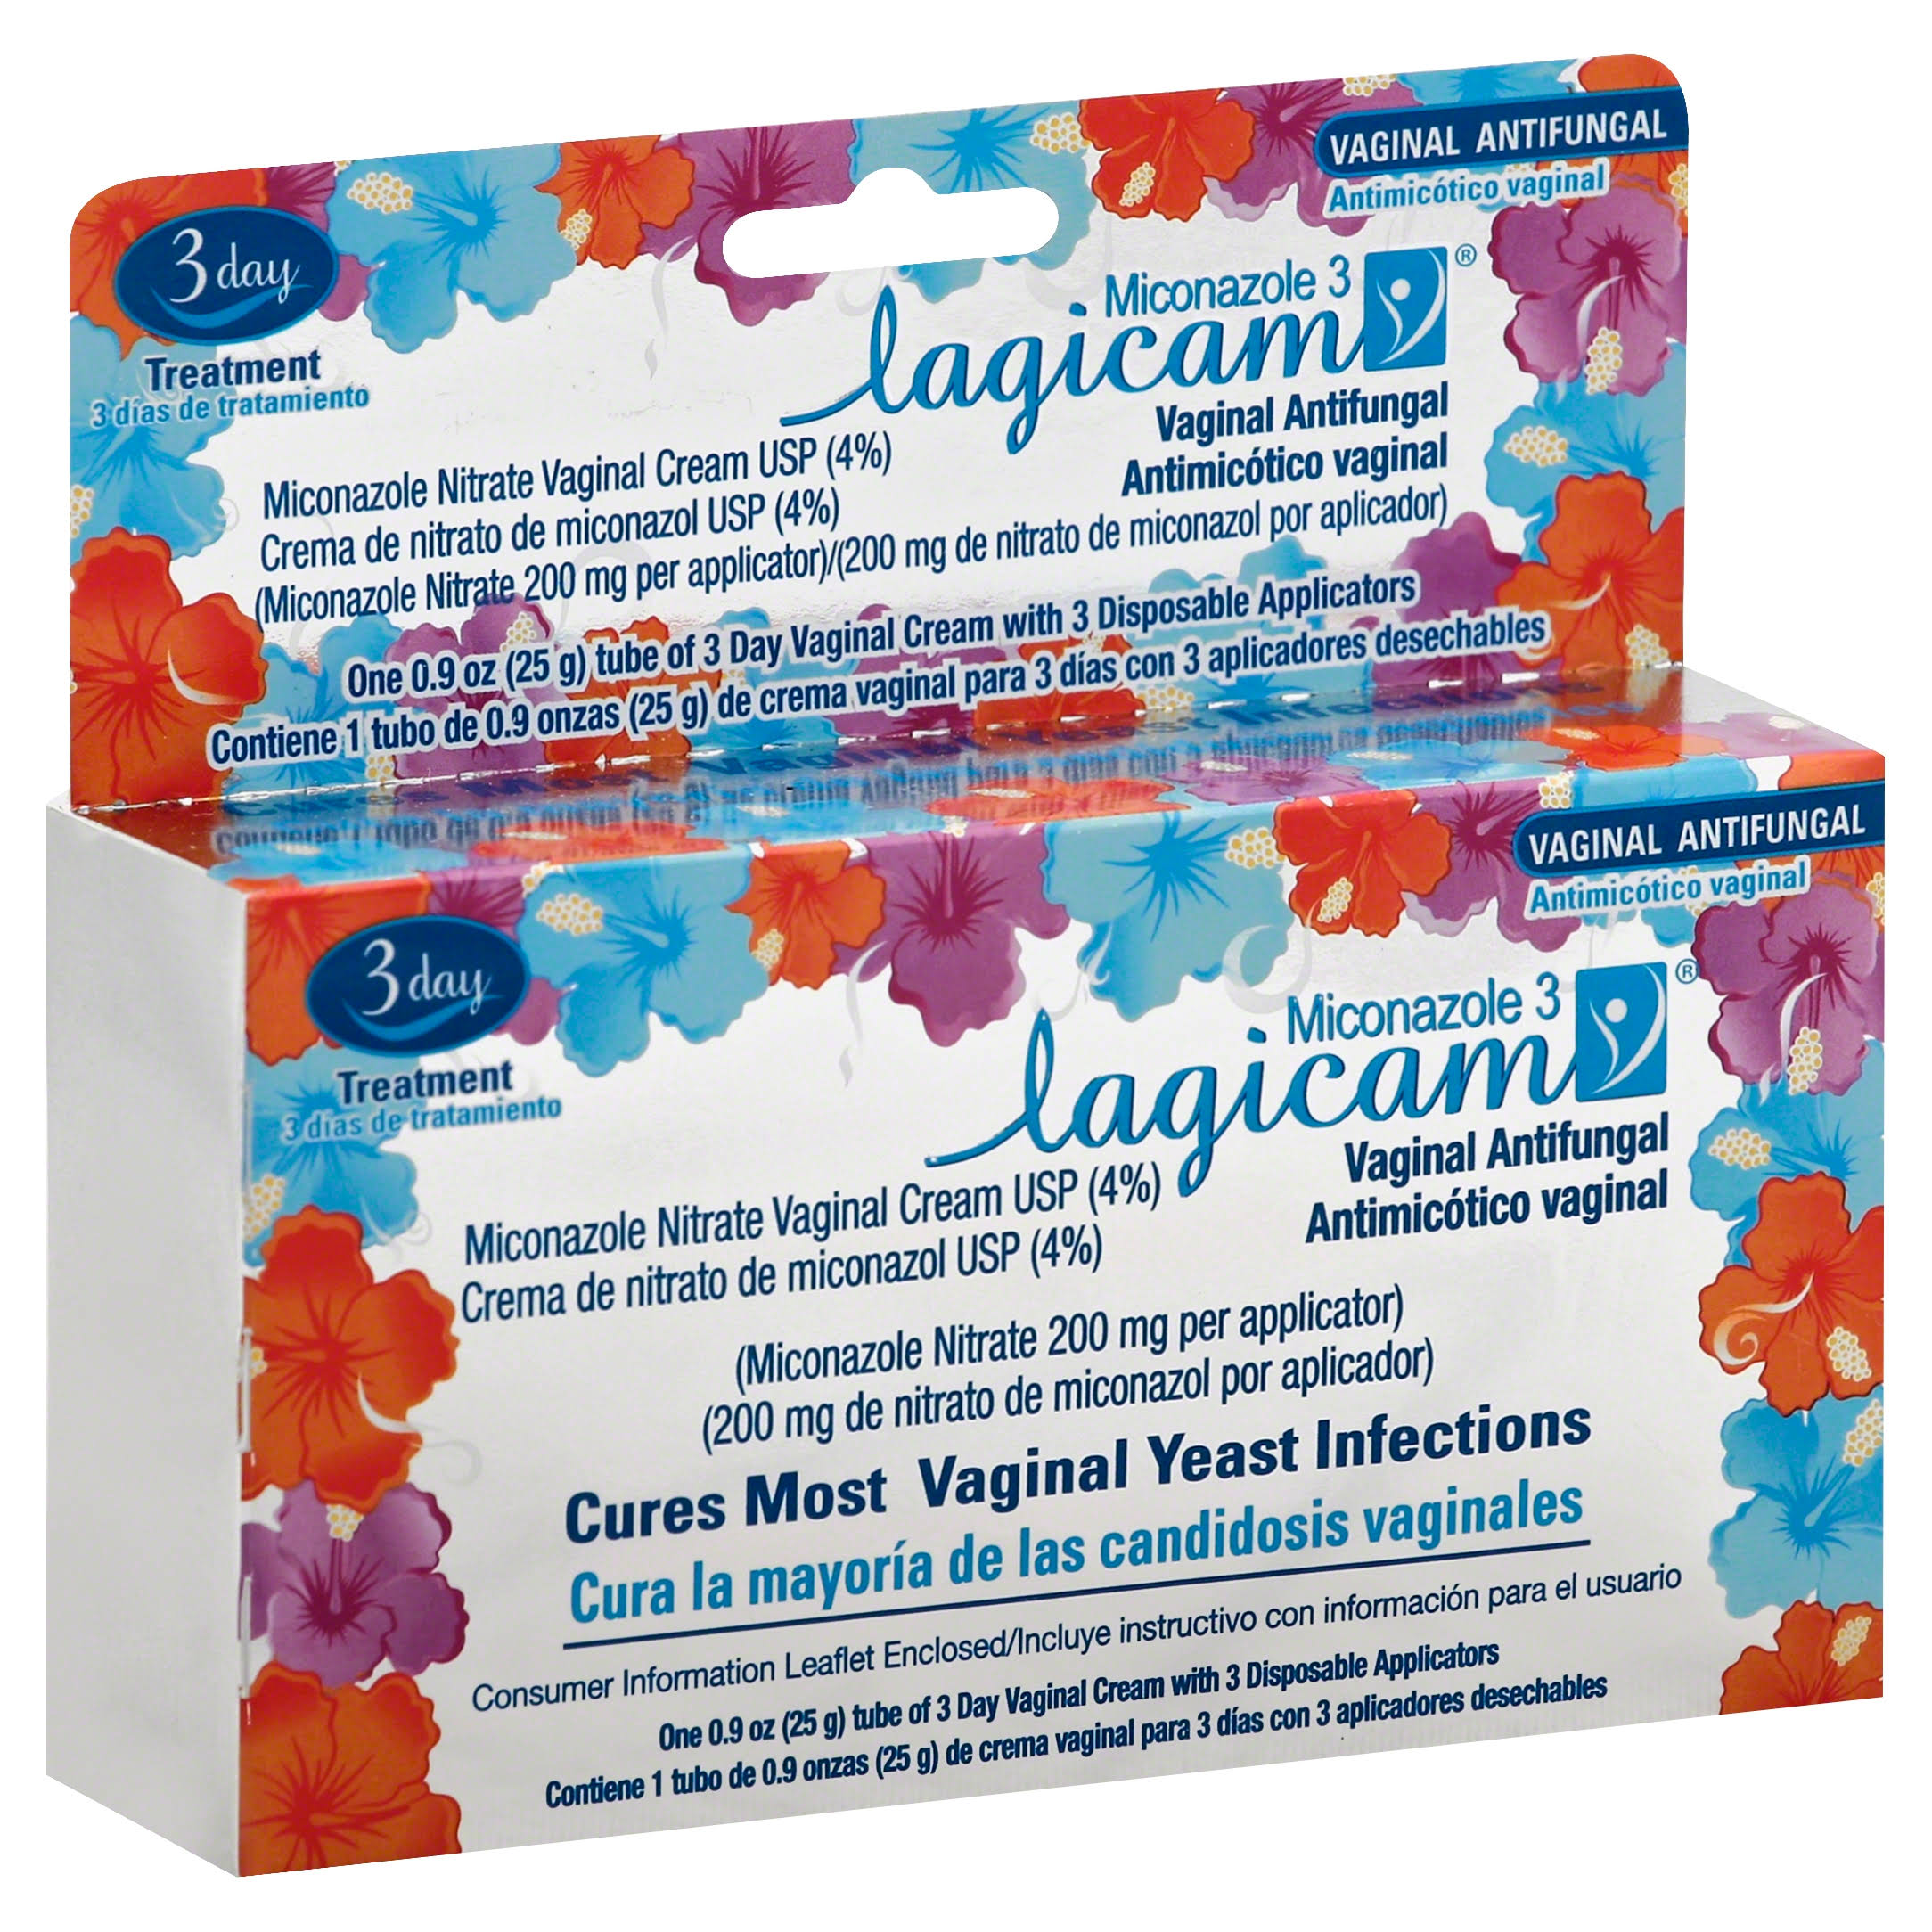 Lagicam Vaginal Yeast Infection Antifungal 3 Day Treatment Cream - 0.9oz